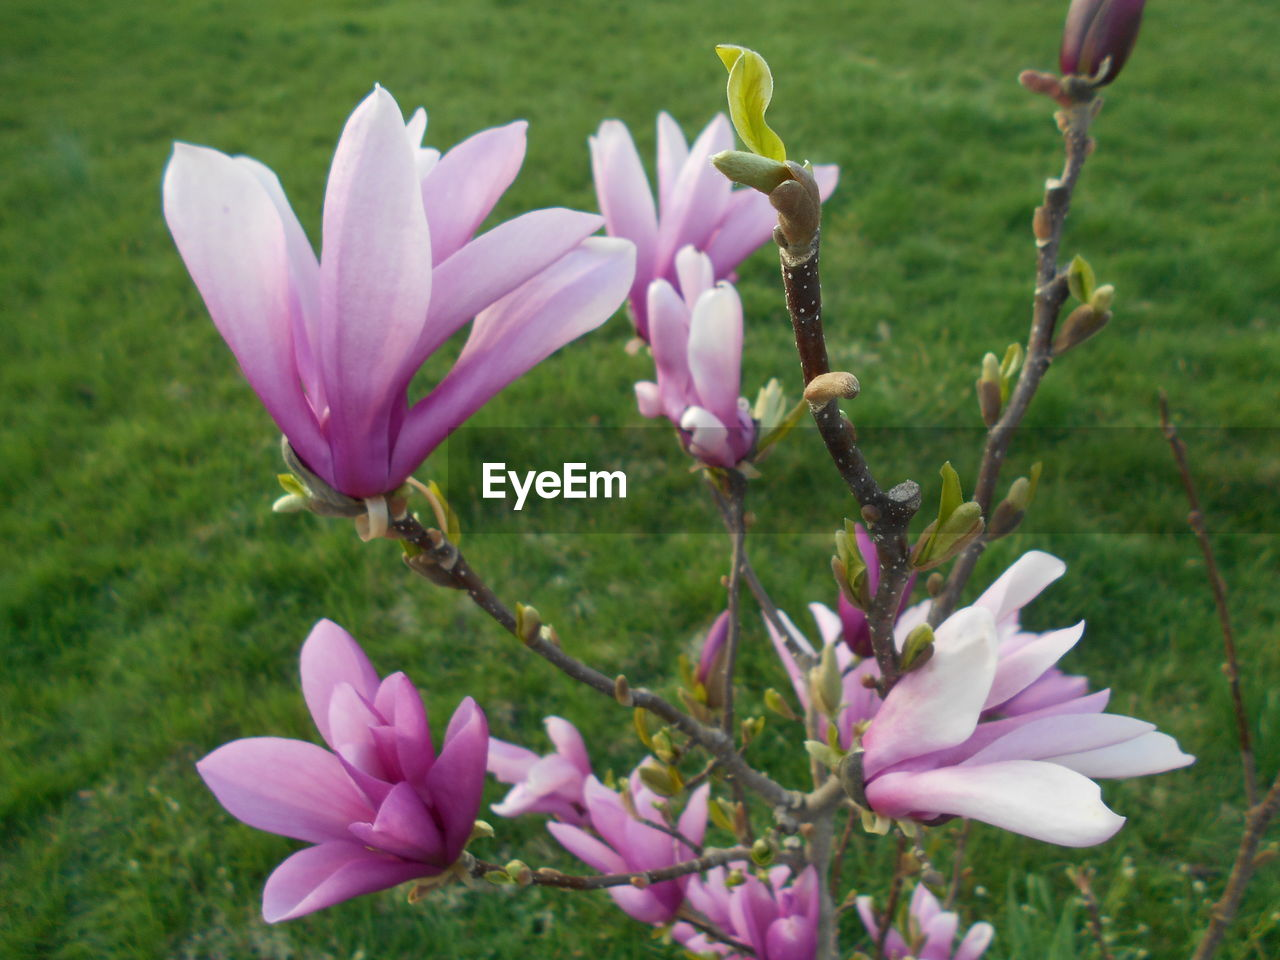 flowering plant, flower, plant, freshness, beauty in nature, vulnerability, fragility, growth, petal, pink color, close-up, flower head, inflorescence, nature, no people, day, focus on foreground, purple, field, outdoors, pollen, crocus